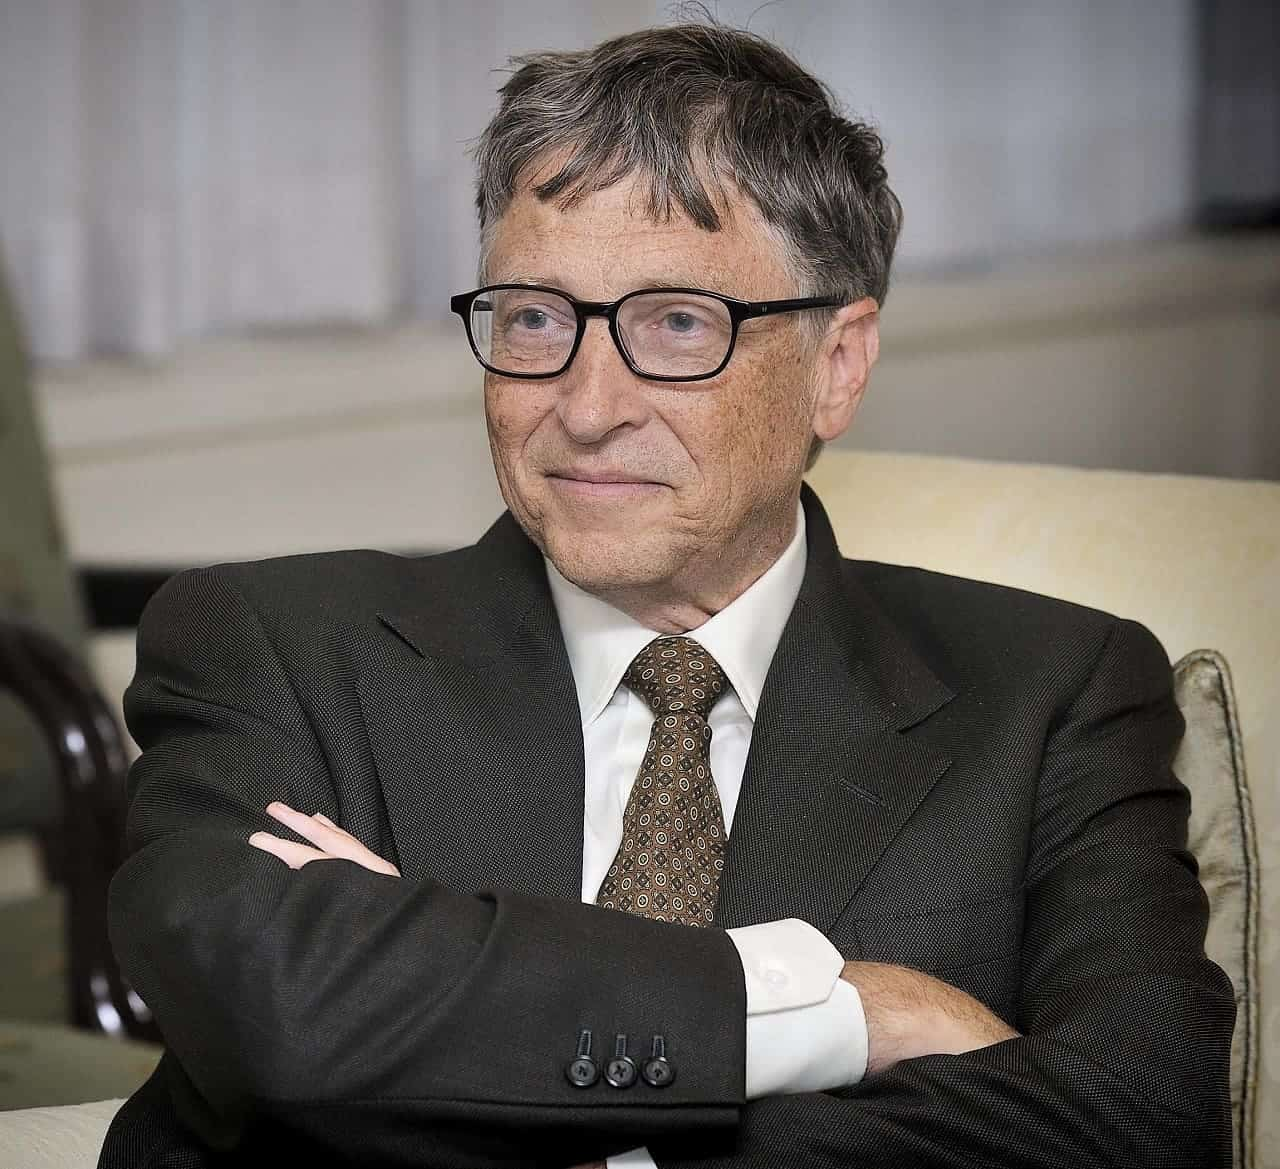 Bill Gates Biography, Age, Wife, Daughter, Family, Net Worth & More 1